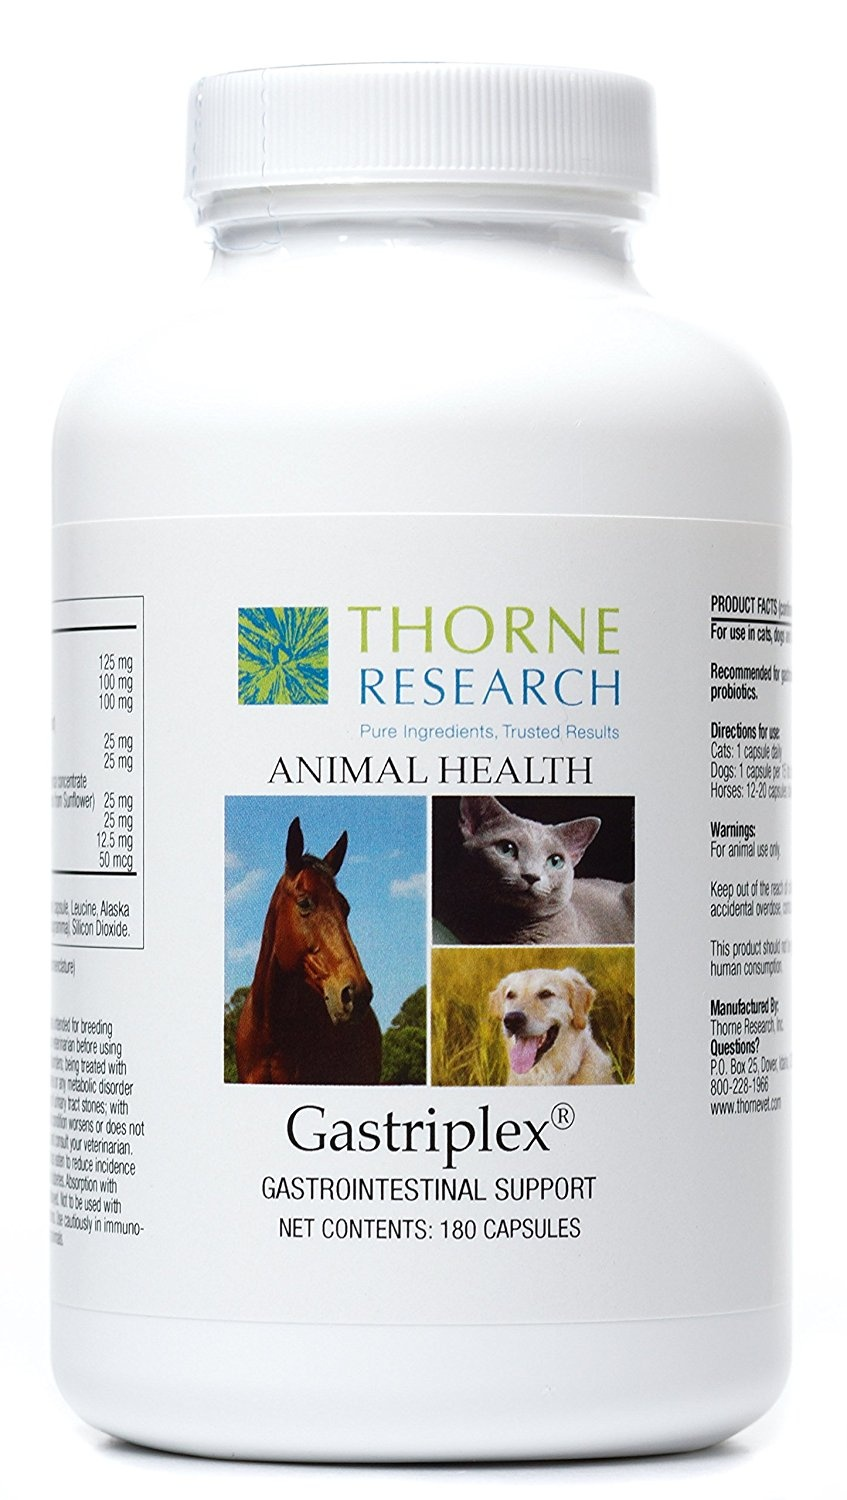 Thorne-Research-Veterinary-Gastriplex-Gastrointestinal-Support-for-Small